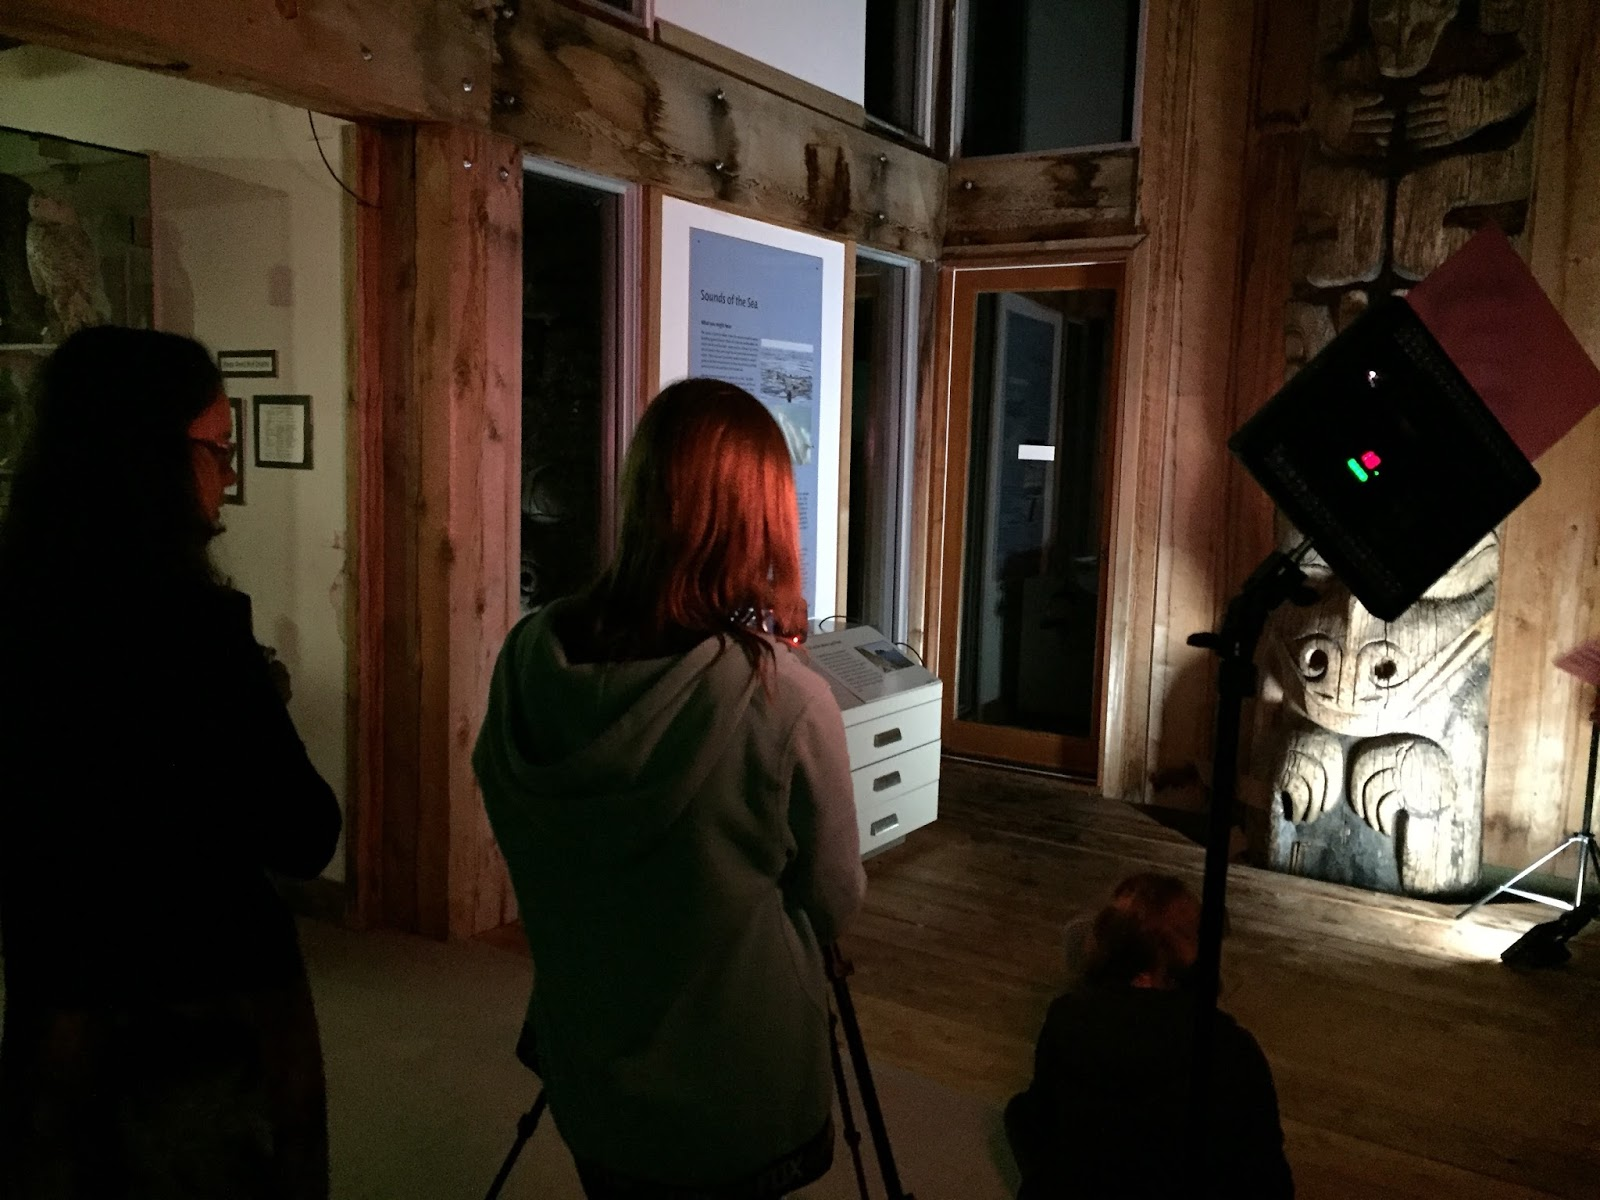 In this scene the main character runs out of the museum doors and into the night!